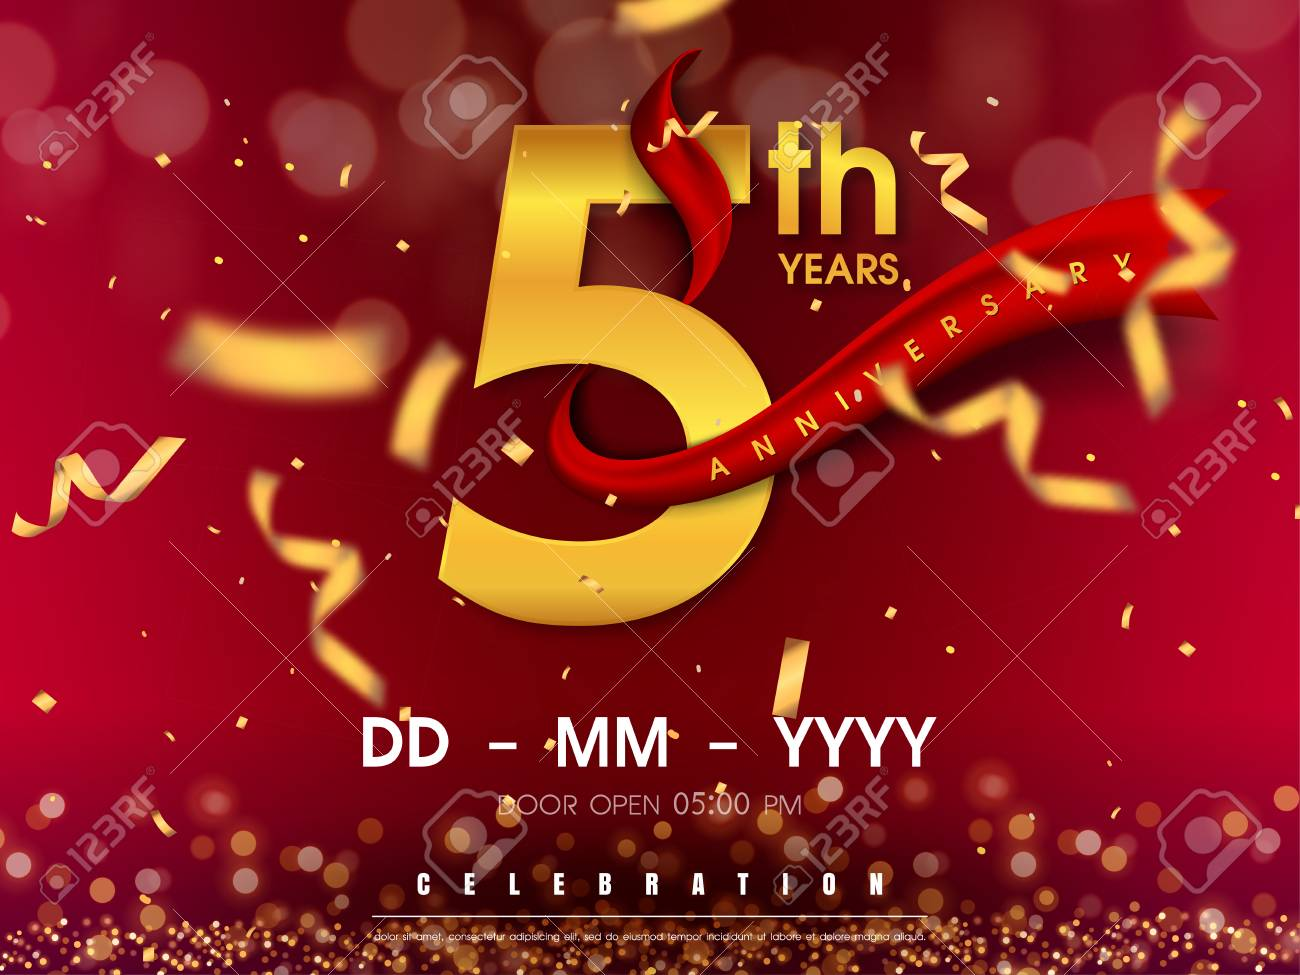 5 years anniversary logo template on gold background. 5th celebrating golden numbers with red ribbon vector and confetti isolated design elements - 118534275